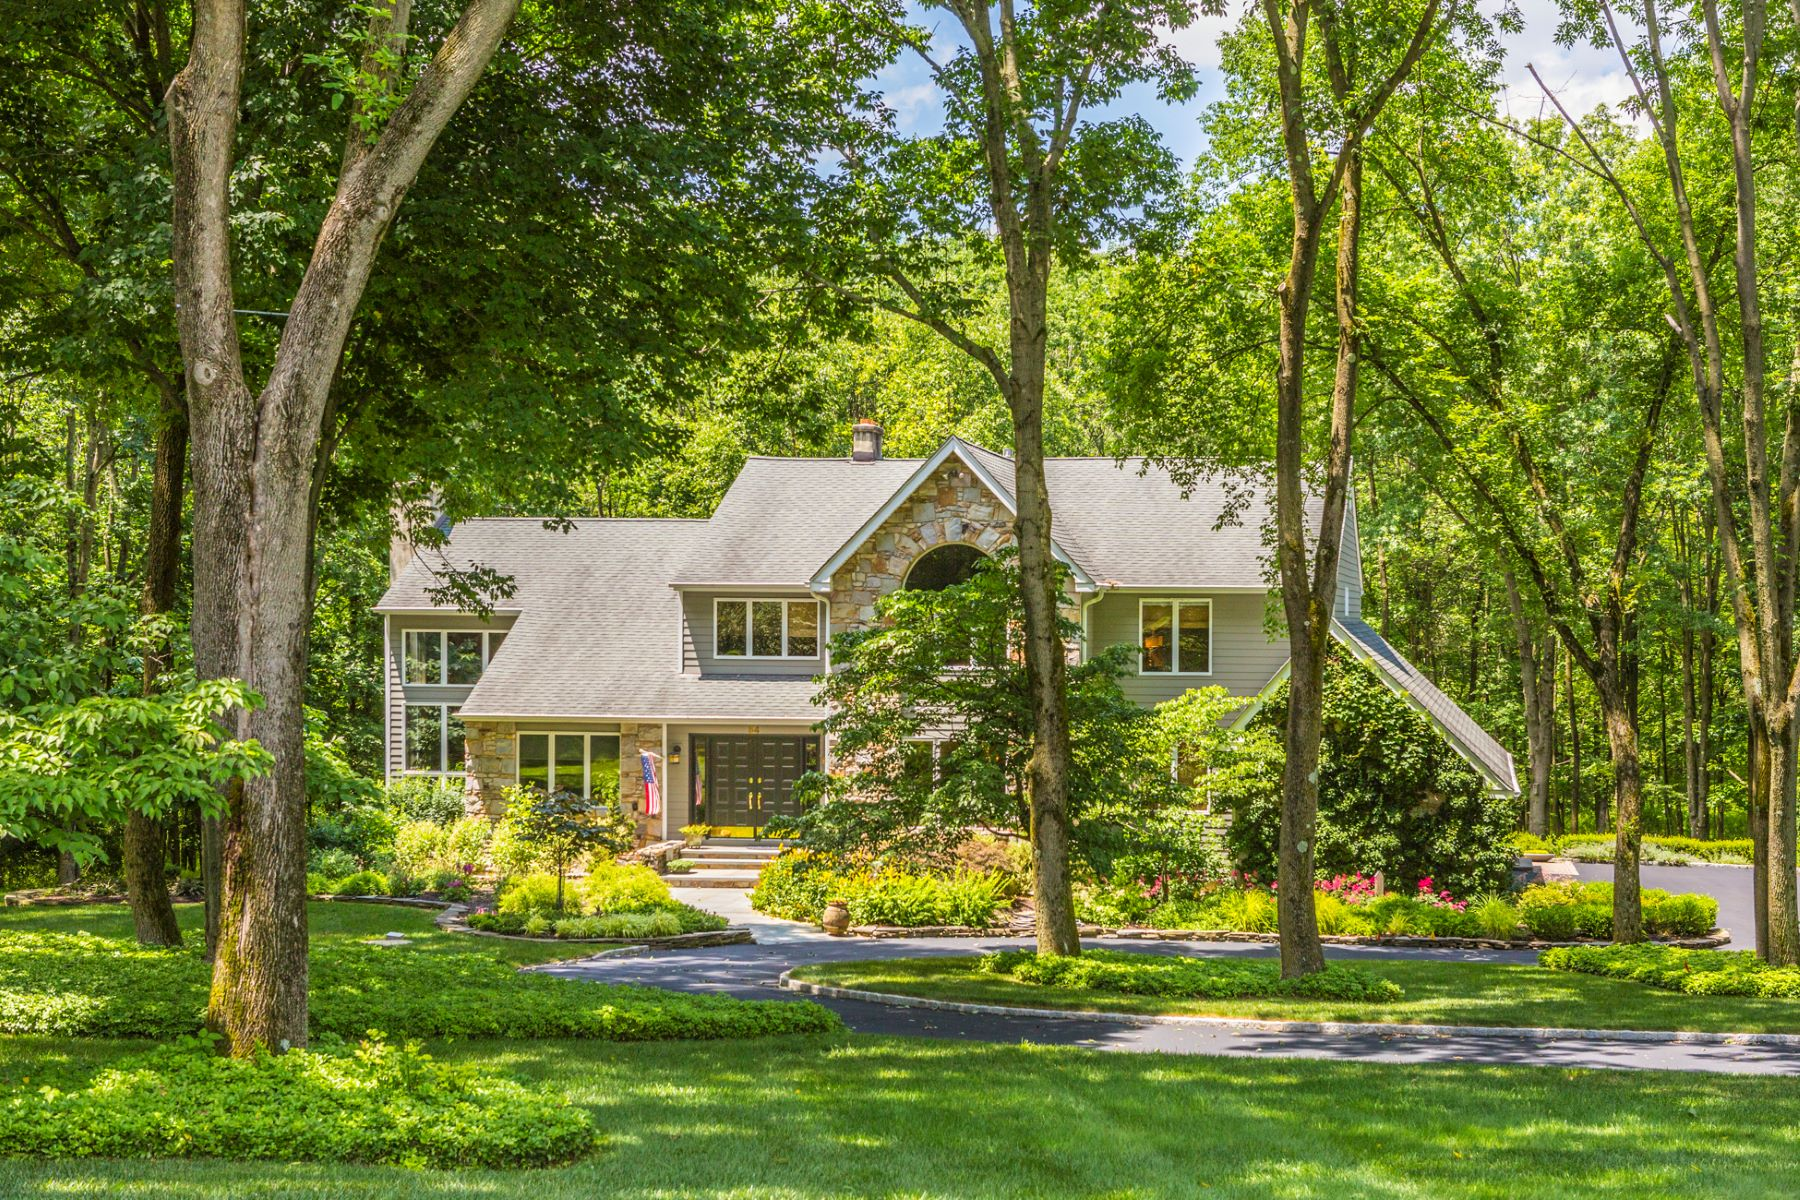 Maison unifamiliale pour l Vente à From Simple Pleasures to Ultimate Luxuries - Montgomery Township 54 Sourland Hills Road Skillman, New Jersey, 08558 États-Unis